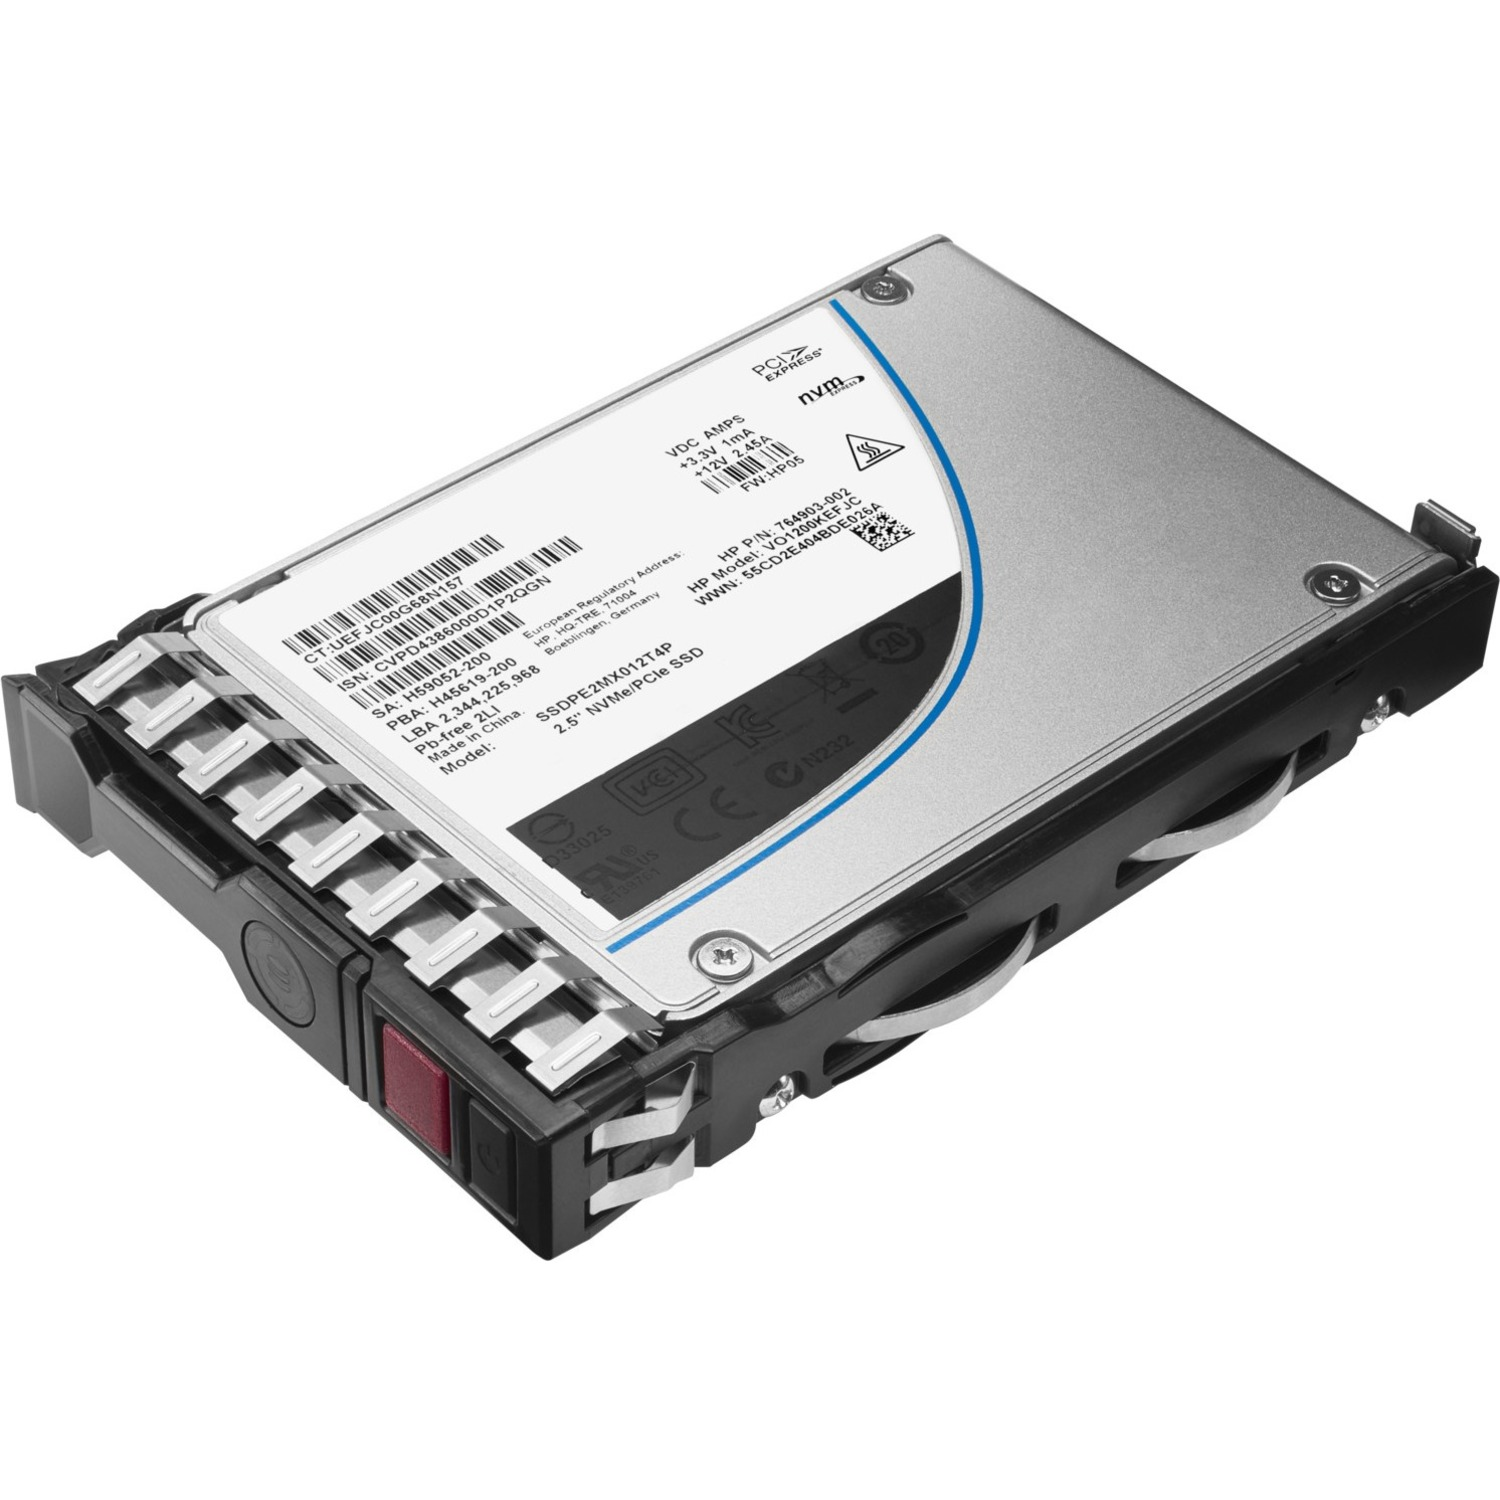 HP 1.20 TB 2.5inch Internal Solid State Drive - SATA